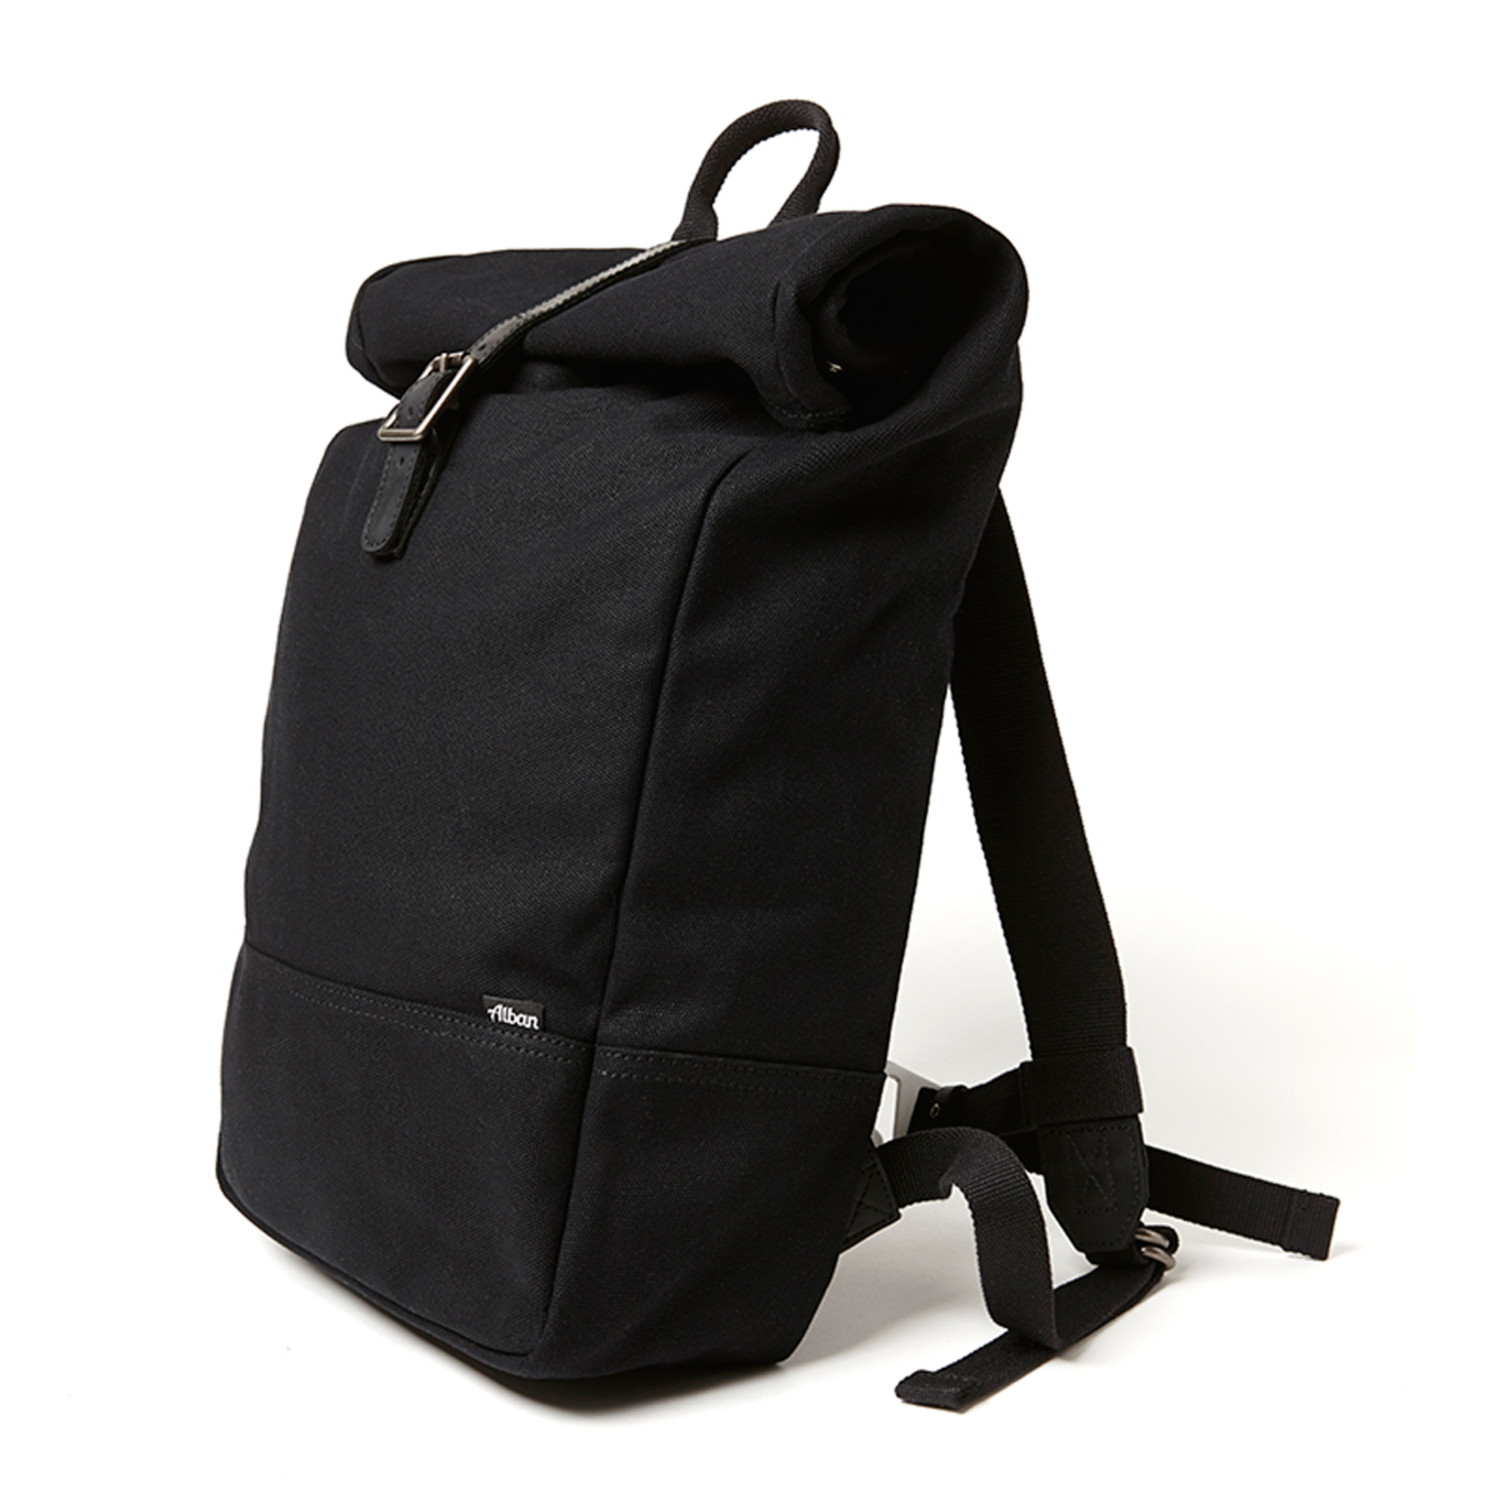 Roll Top Backpack Alban Bike Bags Touch Of Modern